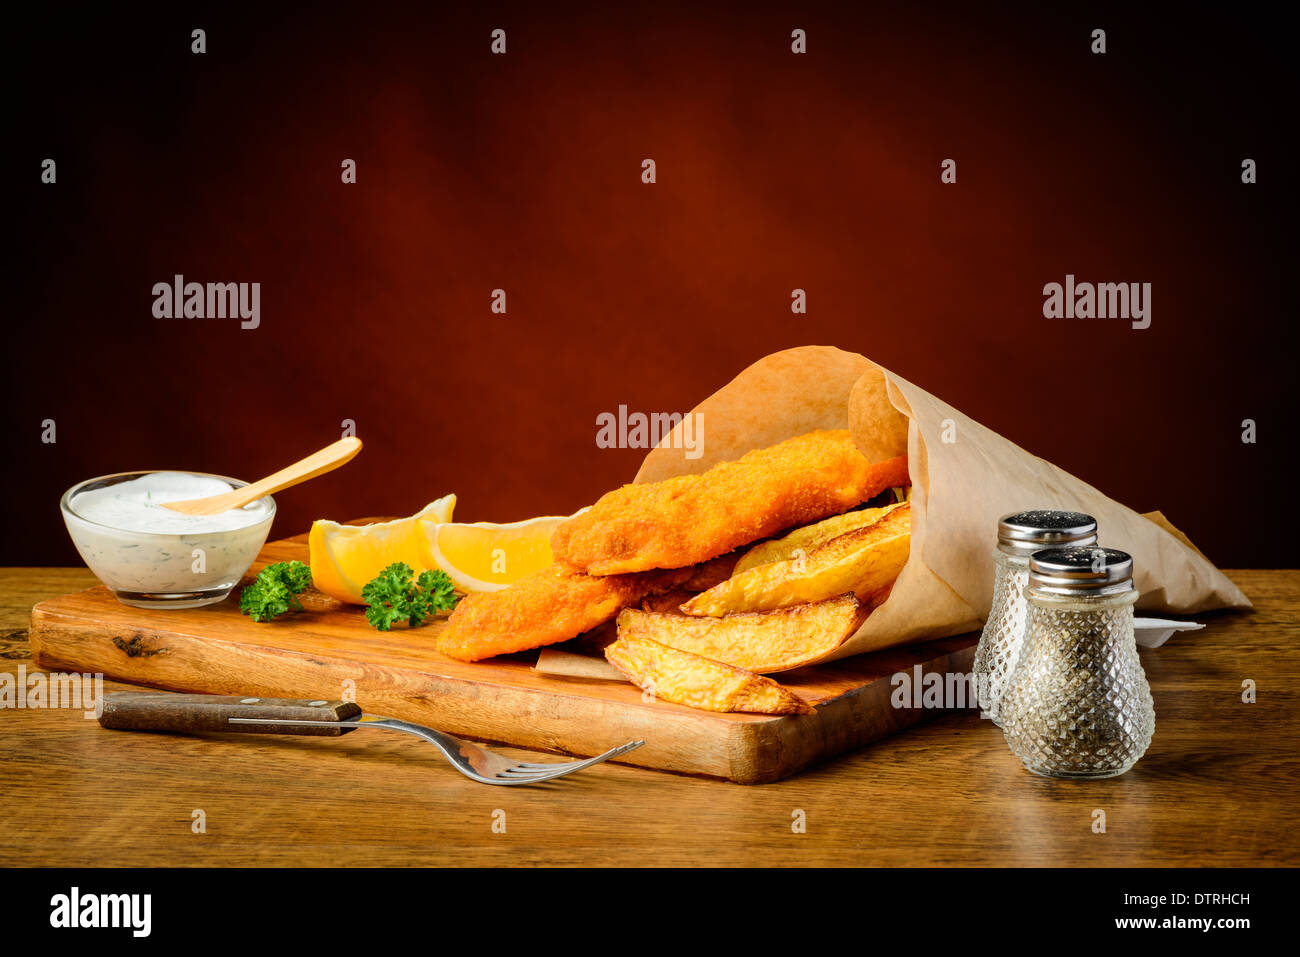 delicious traditional fish and chips meal with lemons and dip - Stock Image